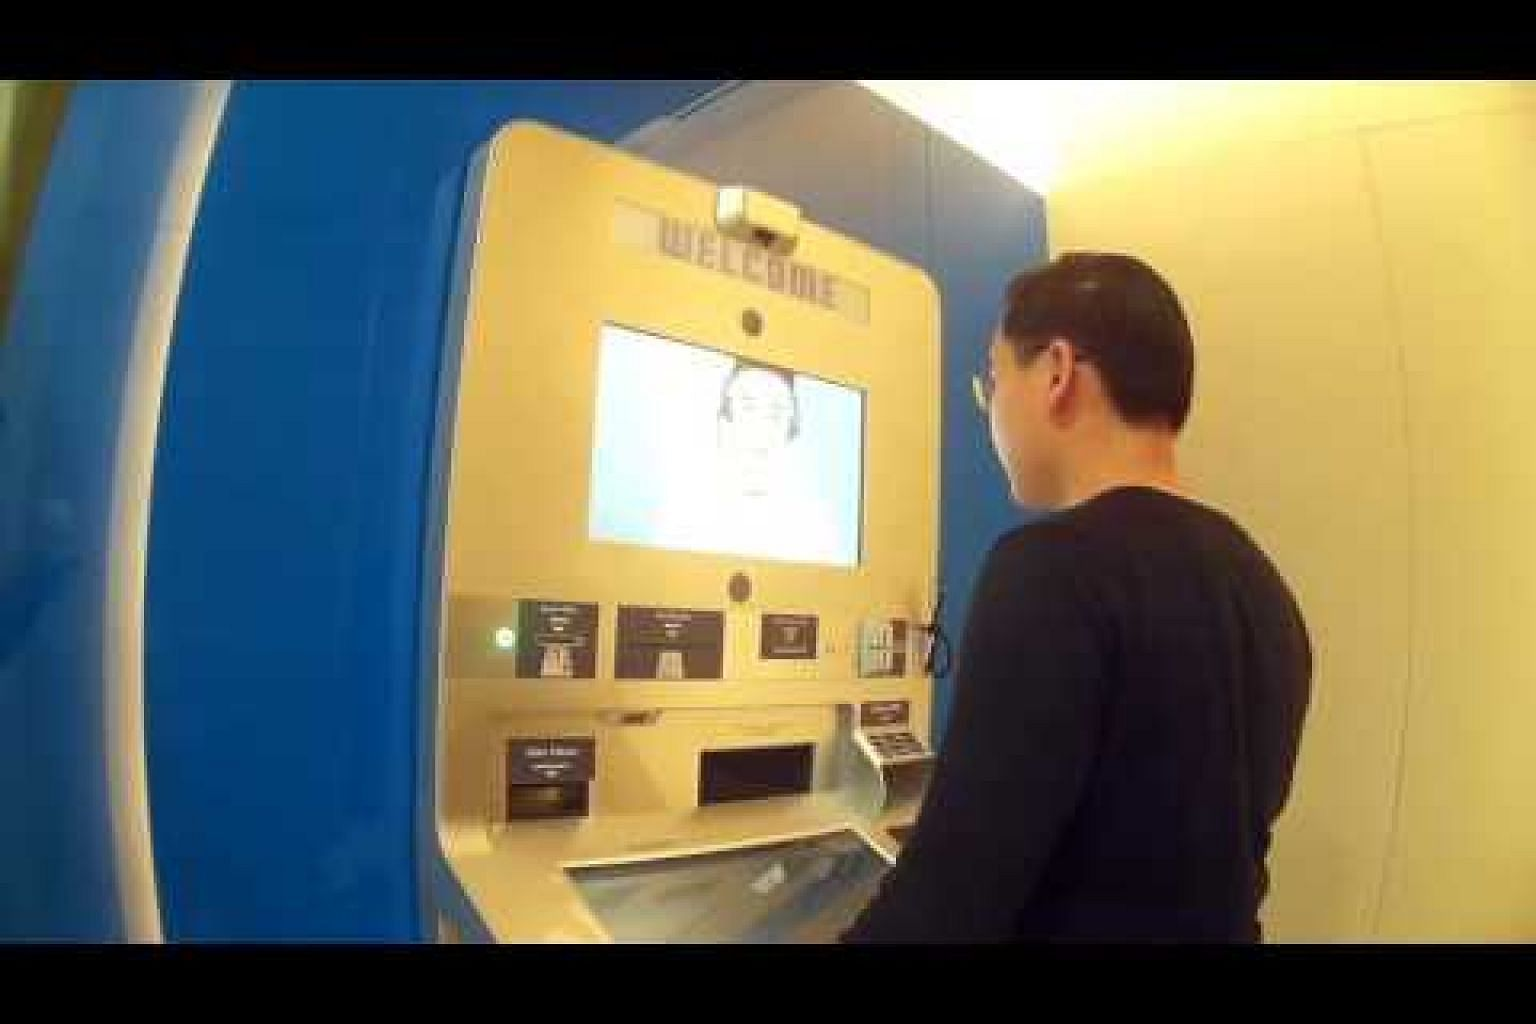 User trying the video teller machine